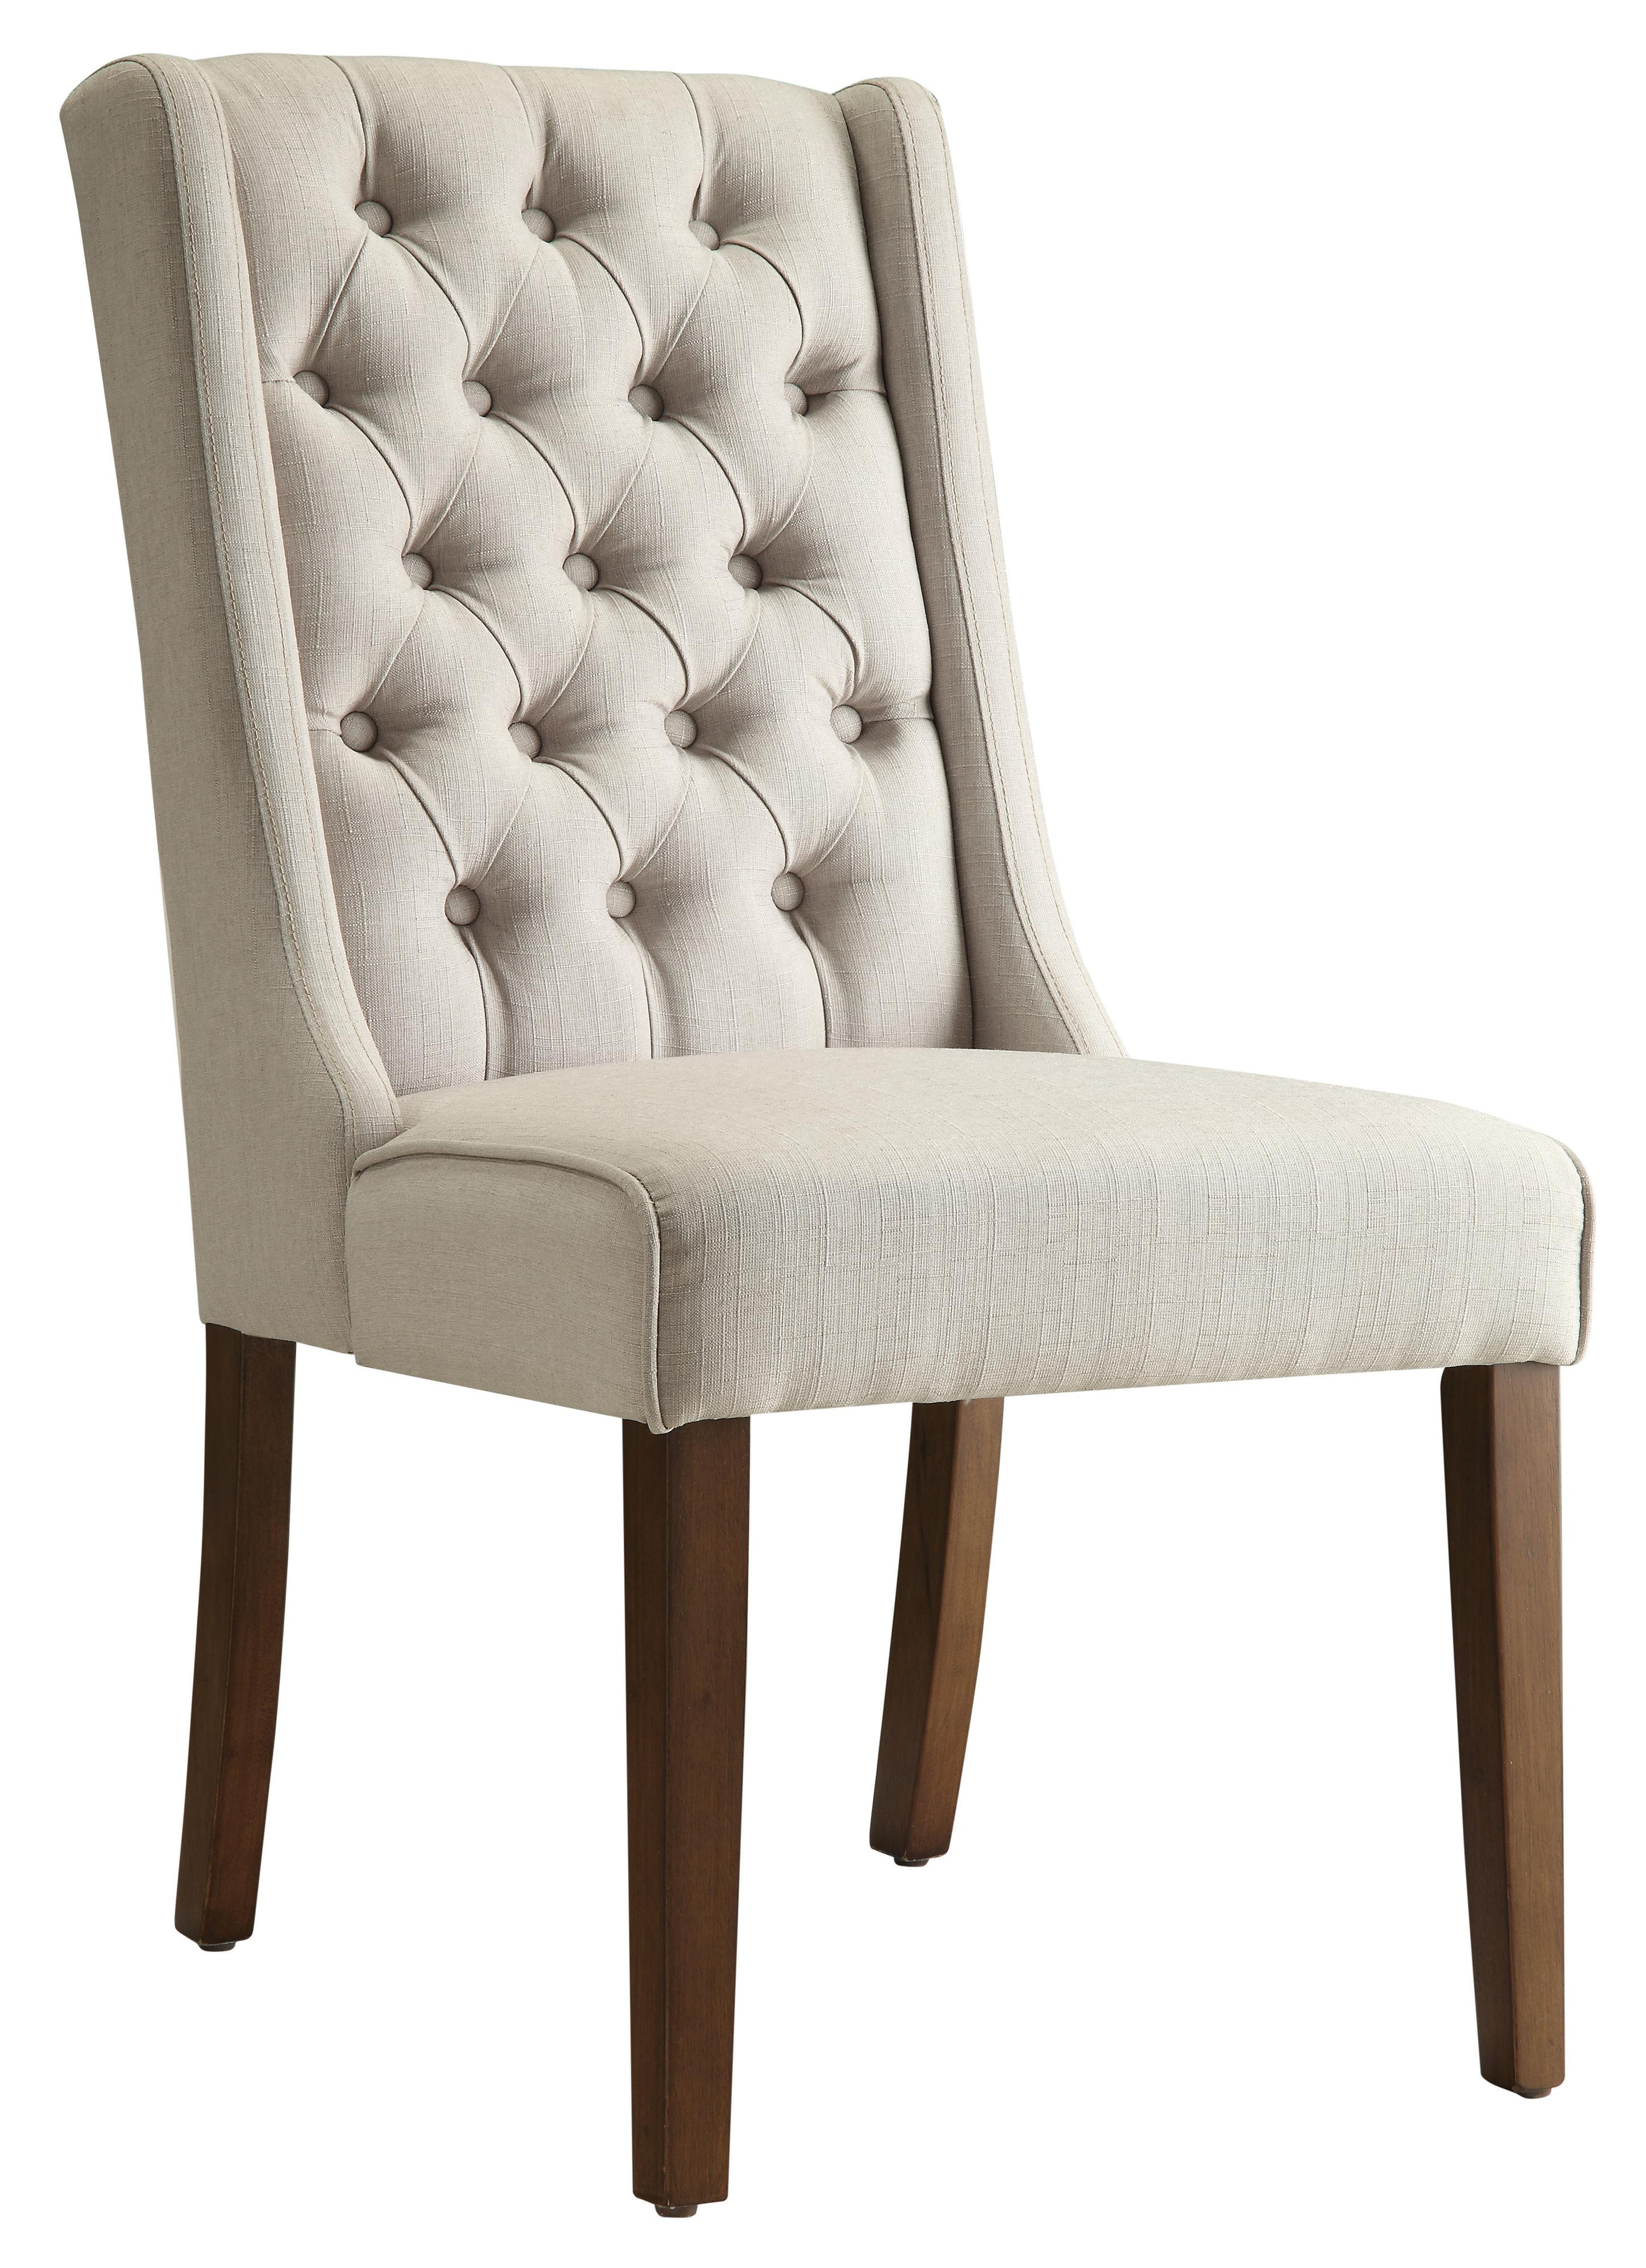 Accent Seating Accent Chair by Coaster at Lapeer Furniture & Mattress Center